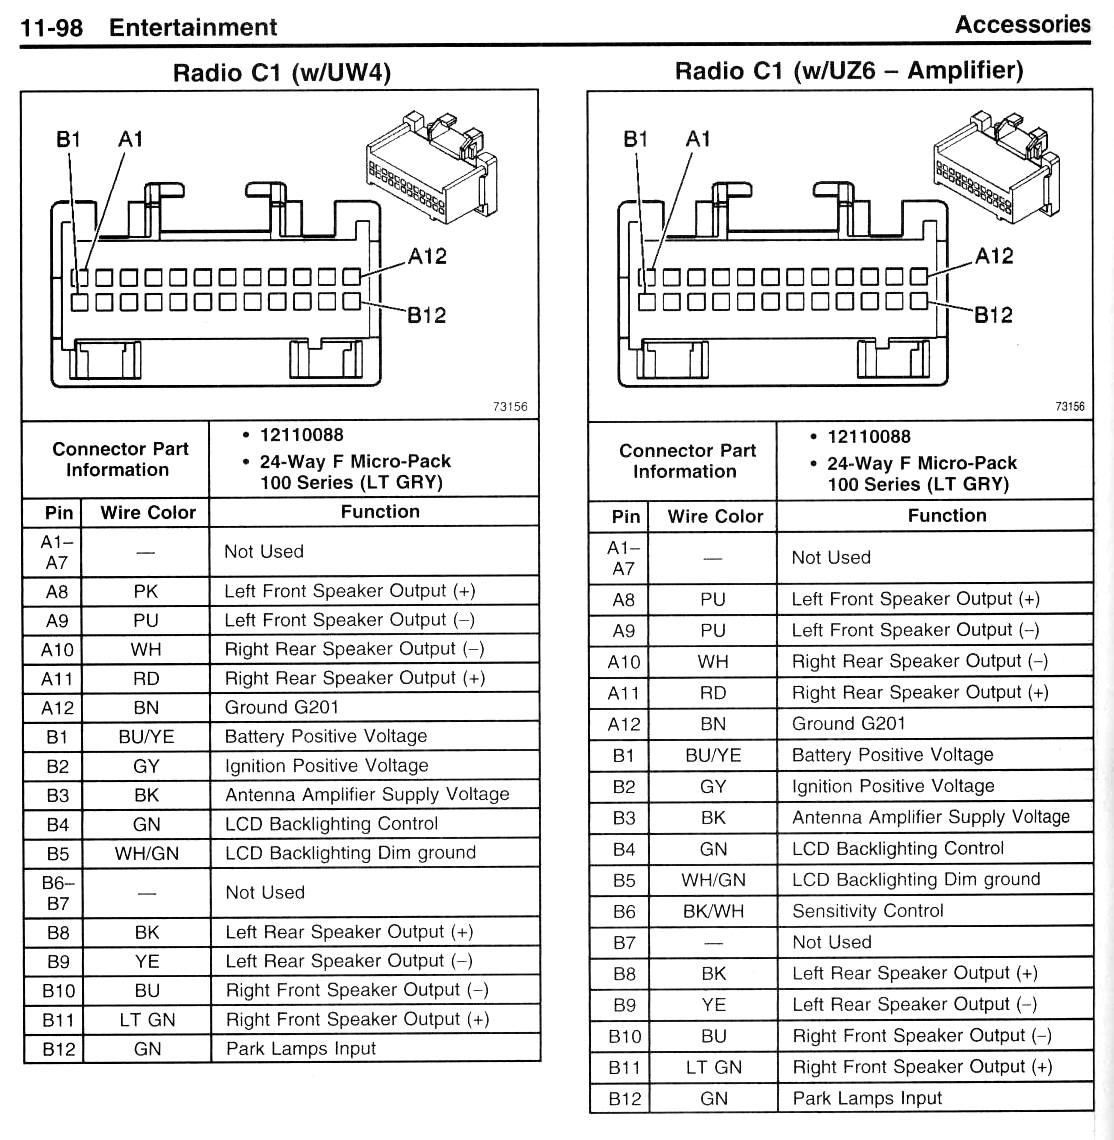 Pontiac Vibe stereo wiring connector solved wiring diagram for wiper motor for 1995 chevy s10 fixya 1998 chevy s10 radio wiring diagram at honlapkeszites.co